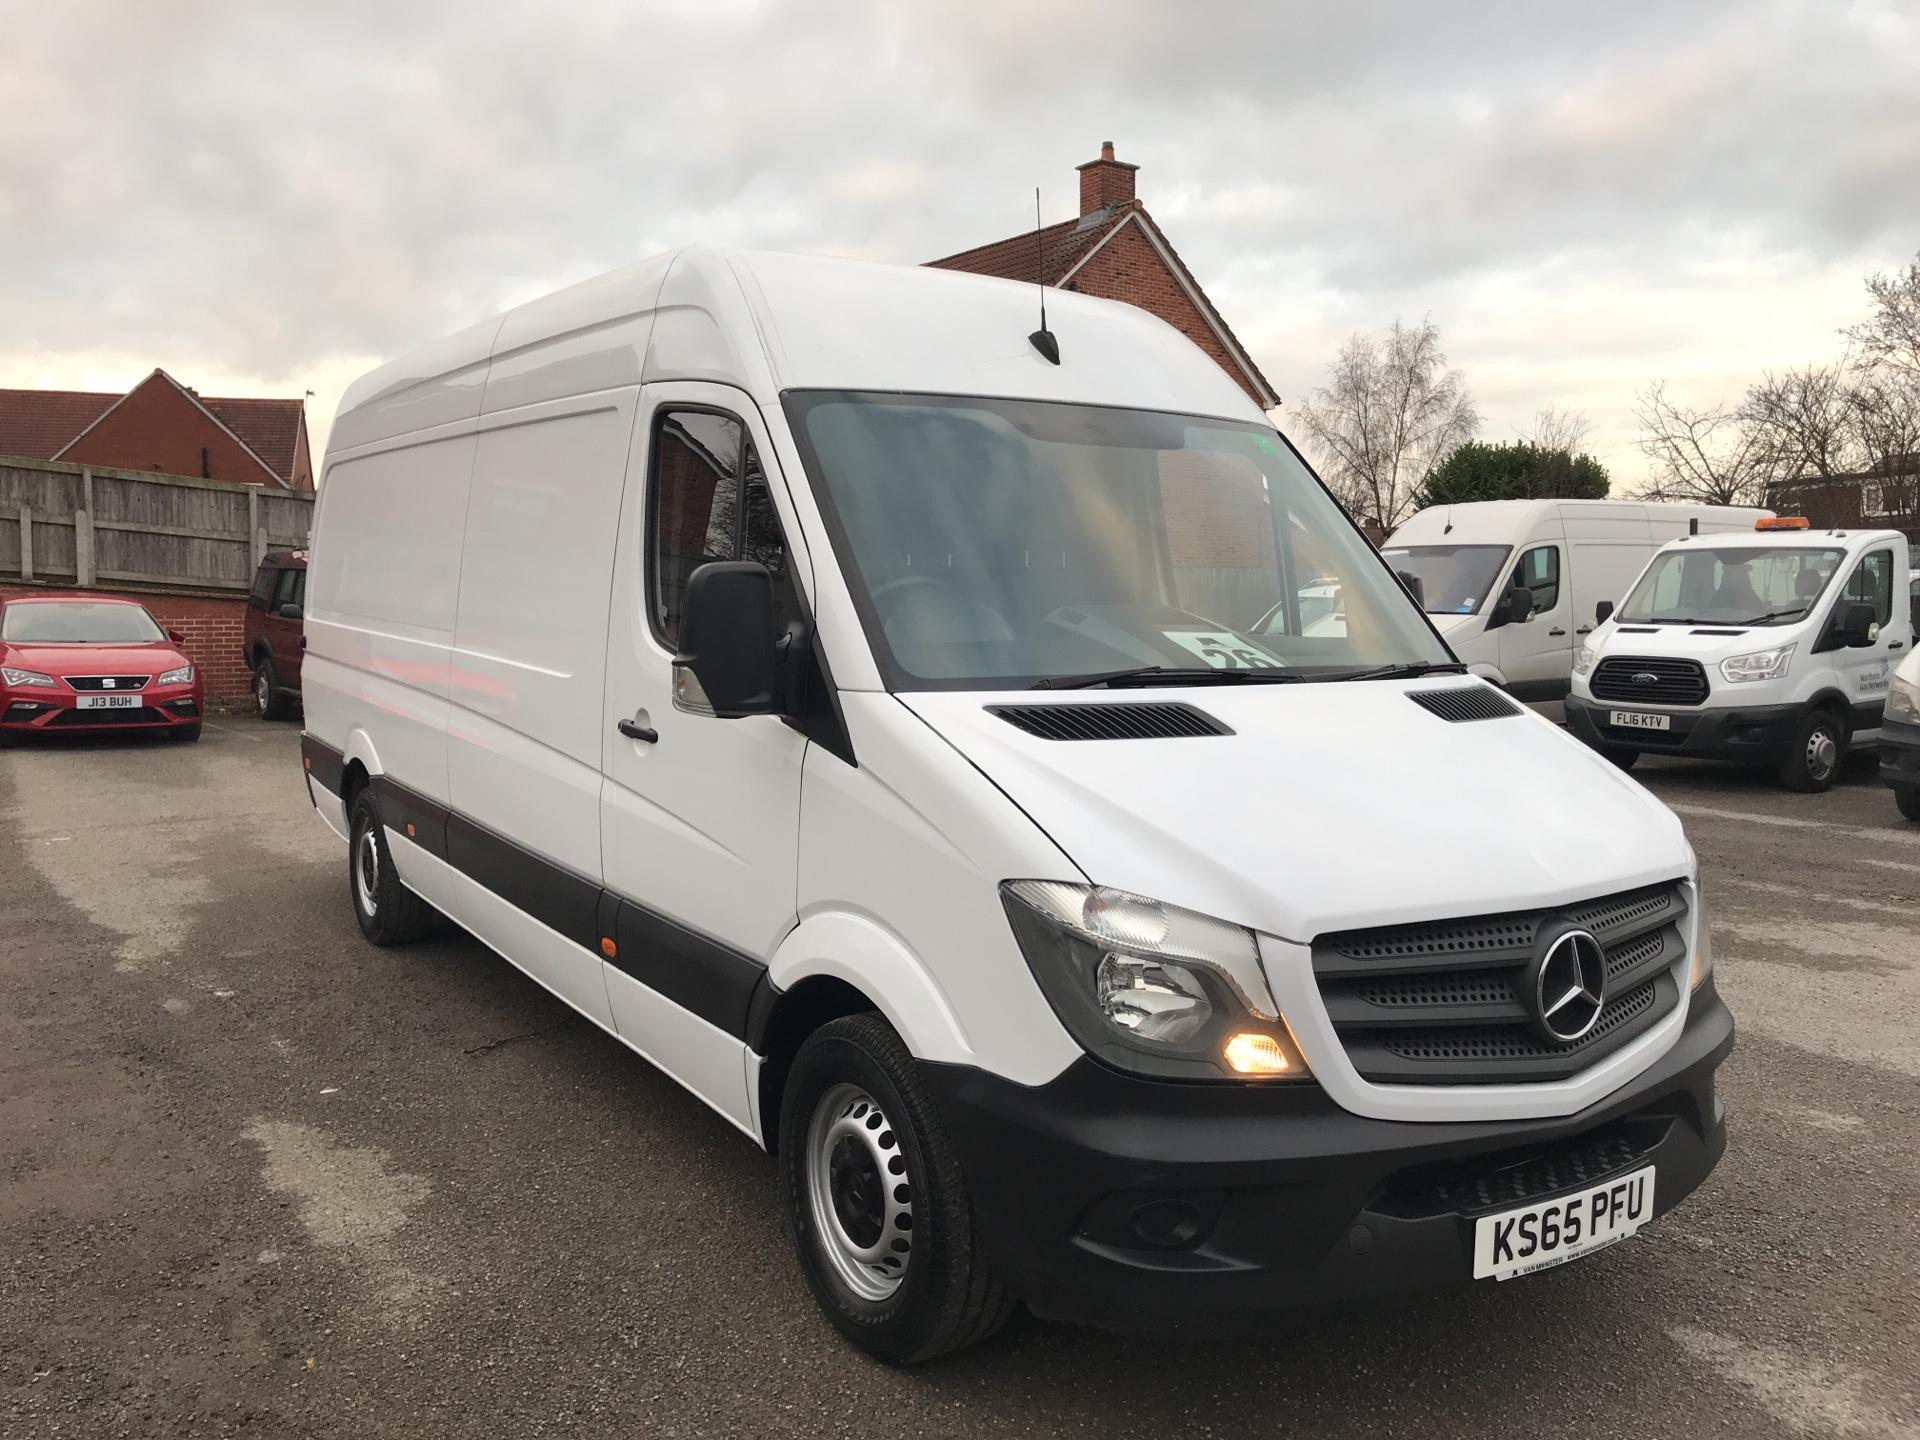 2016 Mercedes-Benz Sprinter 313 LWB H/R EURO 5 *VALUE RANGE VEHICLE CONDITION REFLECTED IN PRICE* (KS65PFU)